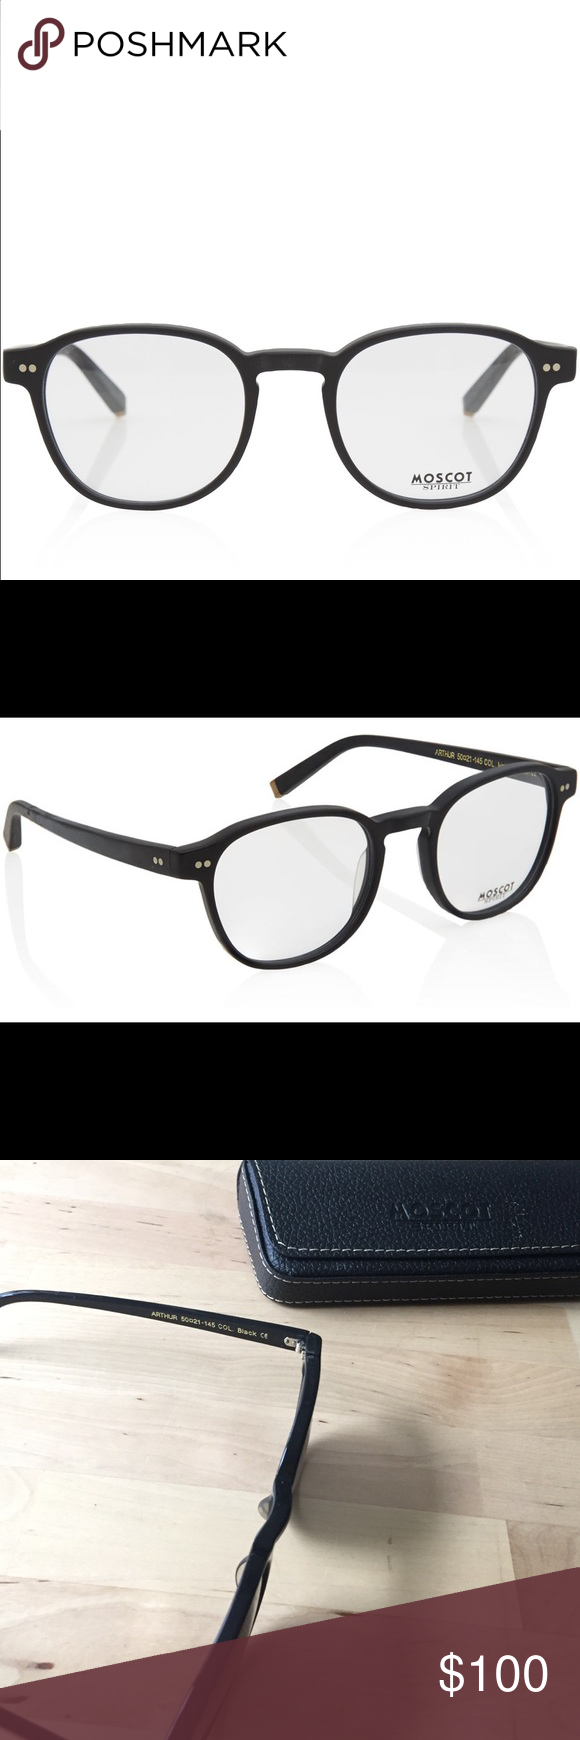 Moscot Arthur frames | Pinterest | Costco, Moscow and Lenses